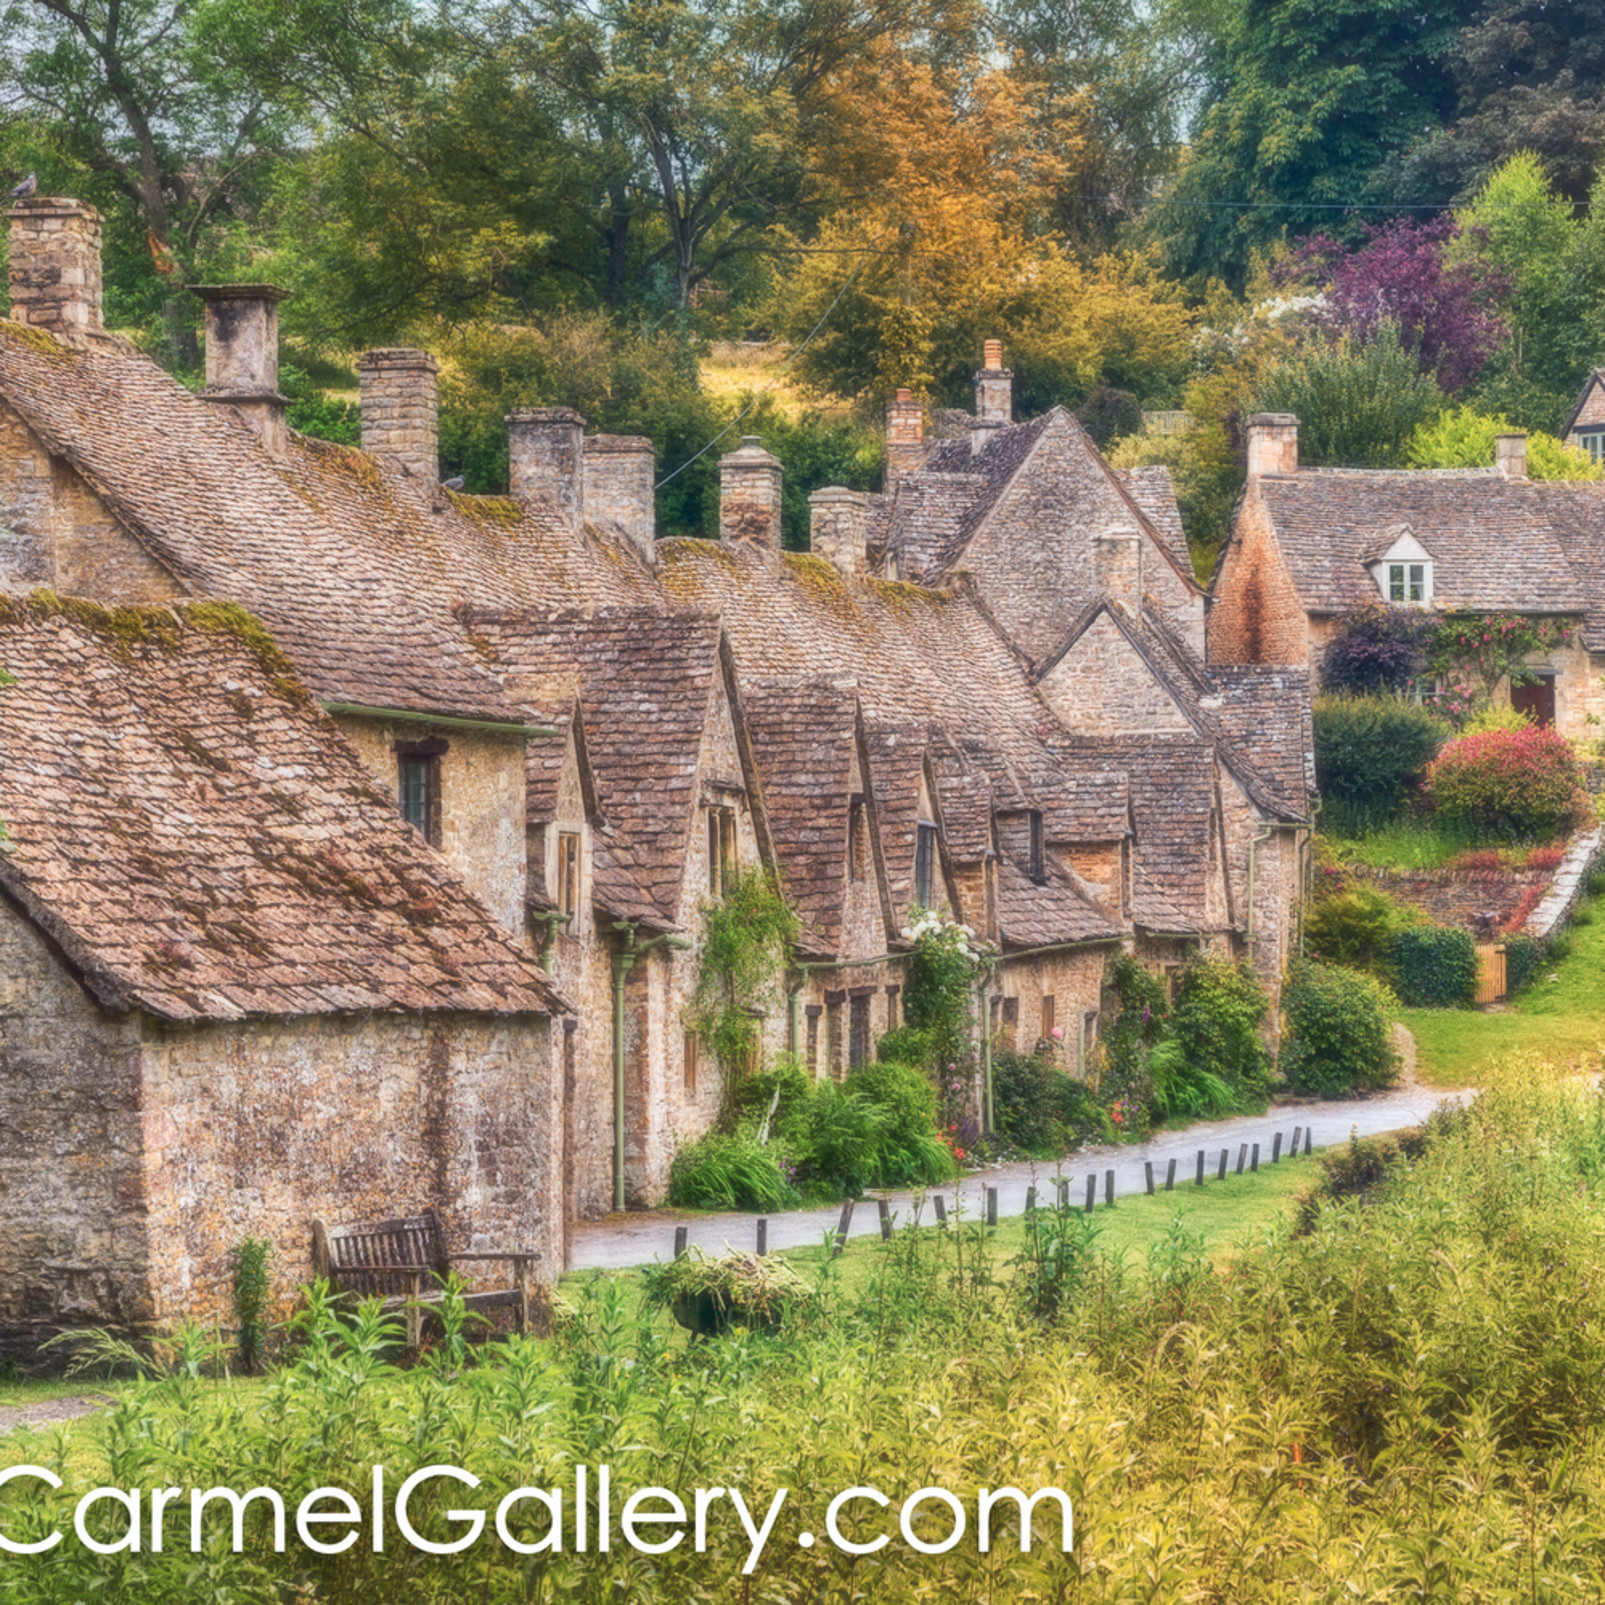 Cotswold stone cottages tnhpar